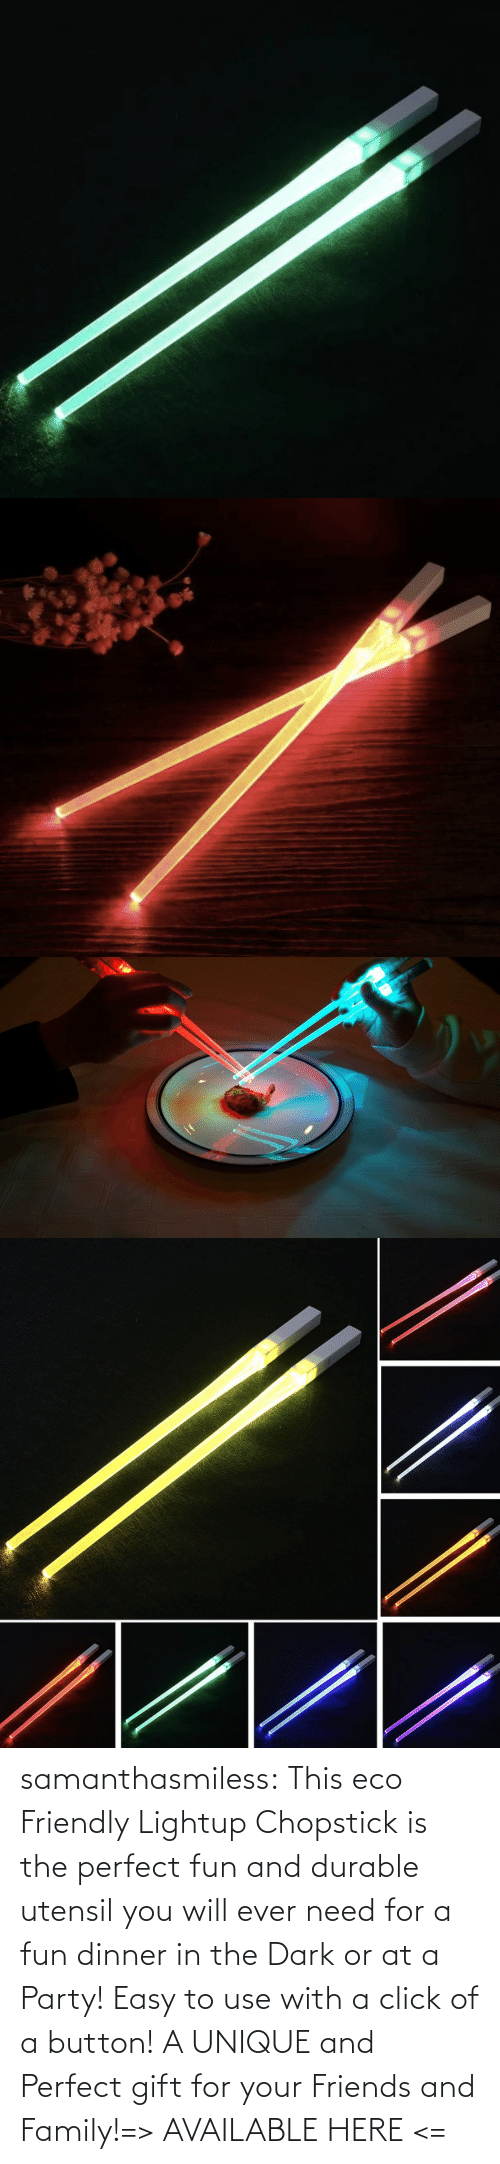 family: samanthasmiless:  This eco Friendly Lightup Chopstick is the perfect fun and durable utensil you will ever need for a fun dinner in the Dark or at a Party! Easy to use with a click of a button! A UNIQUE and Perfect gift for your Friends and Family!=> AVAILABLE HERE <=